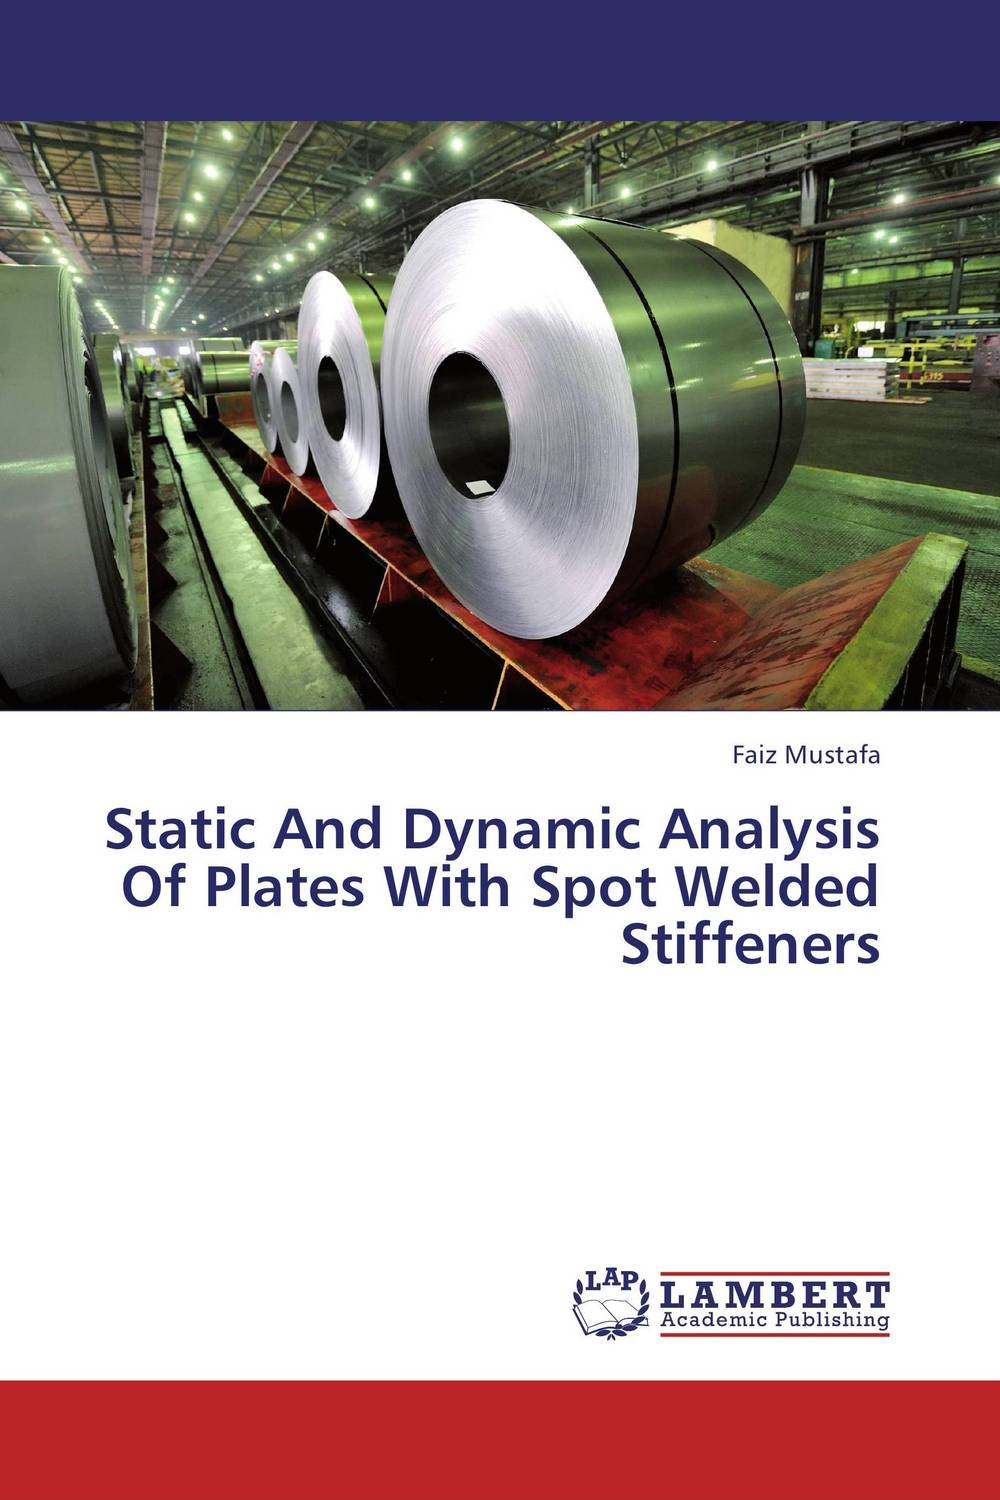 Static And Dynamic Analysis Of Plates With Spot Welded Stiffeners welding helmet welder cap for welding equipment chrome for free post